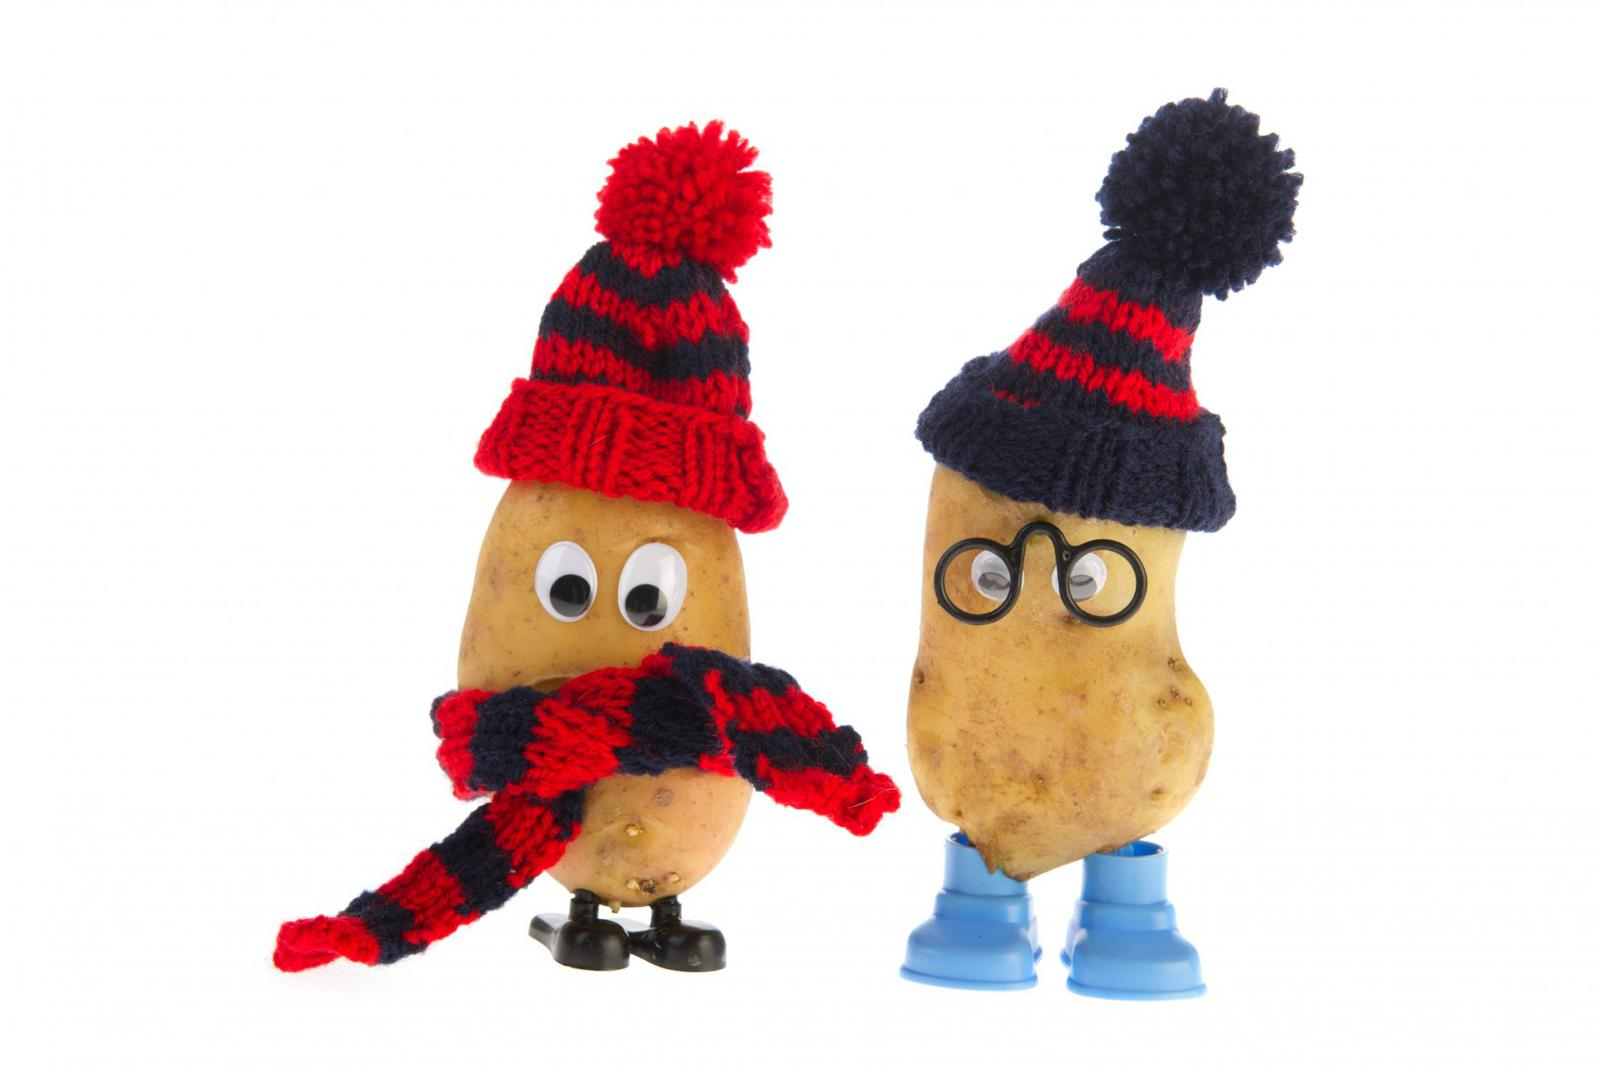 Potato heads